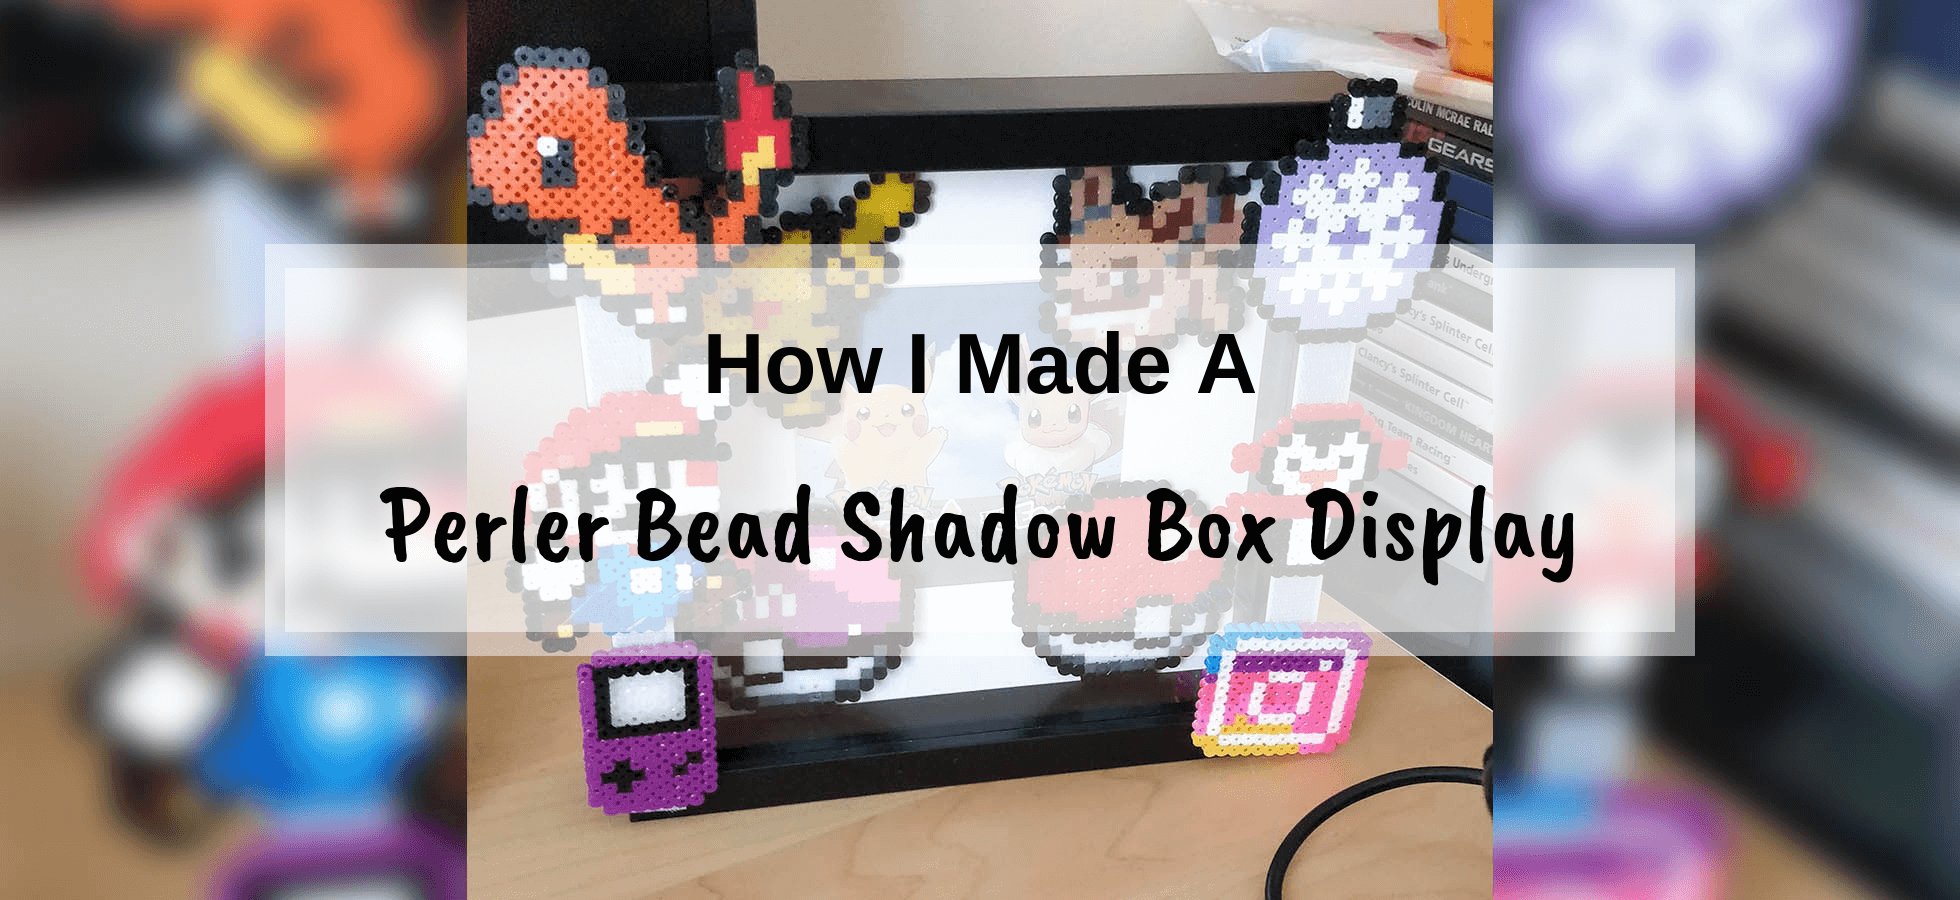 How To Make A Perler Bead Shadow Box Display